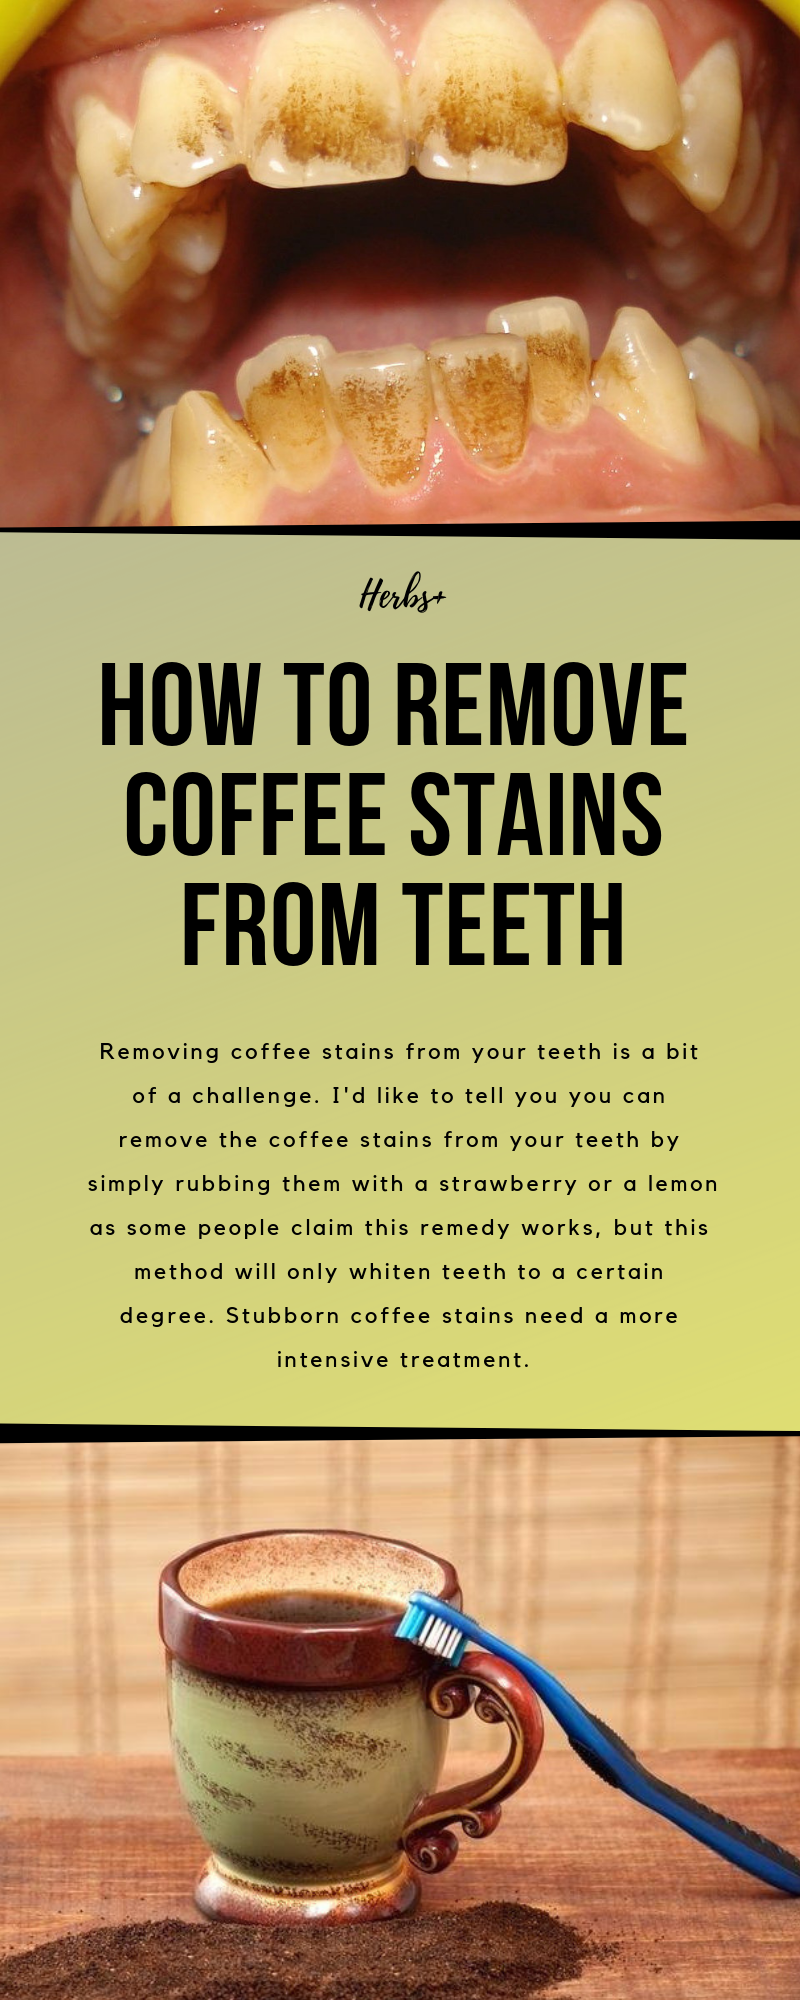 How To Remove Coffee Stains >> How To Remove Coffee Stains From Teeth Healthcare Coffee Stain